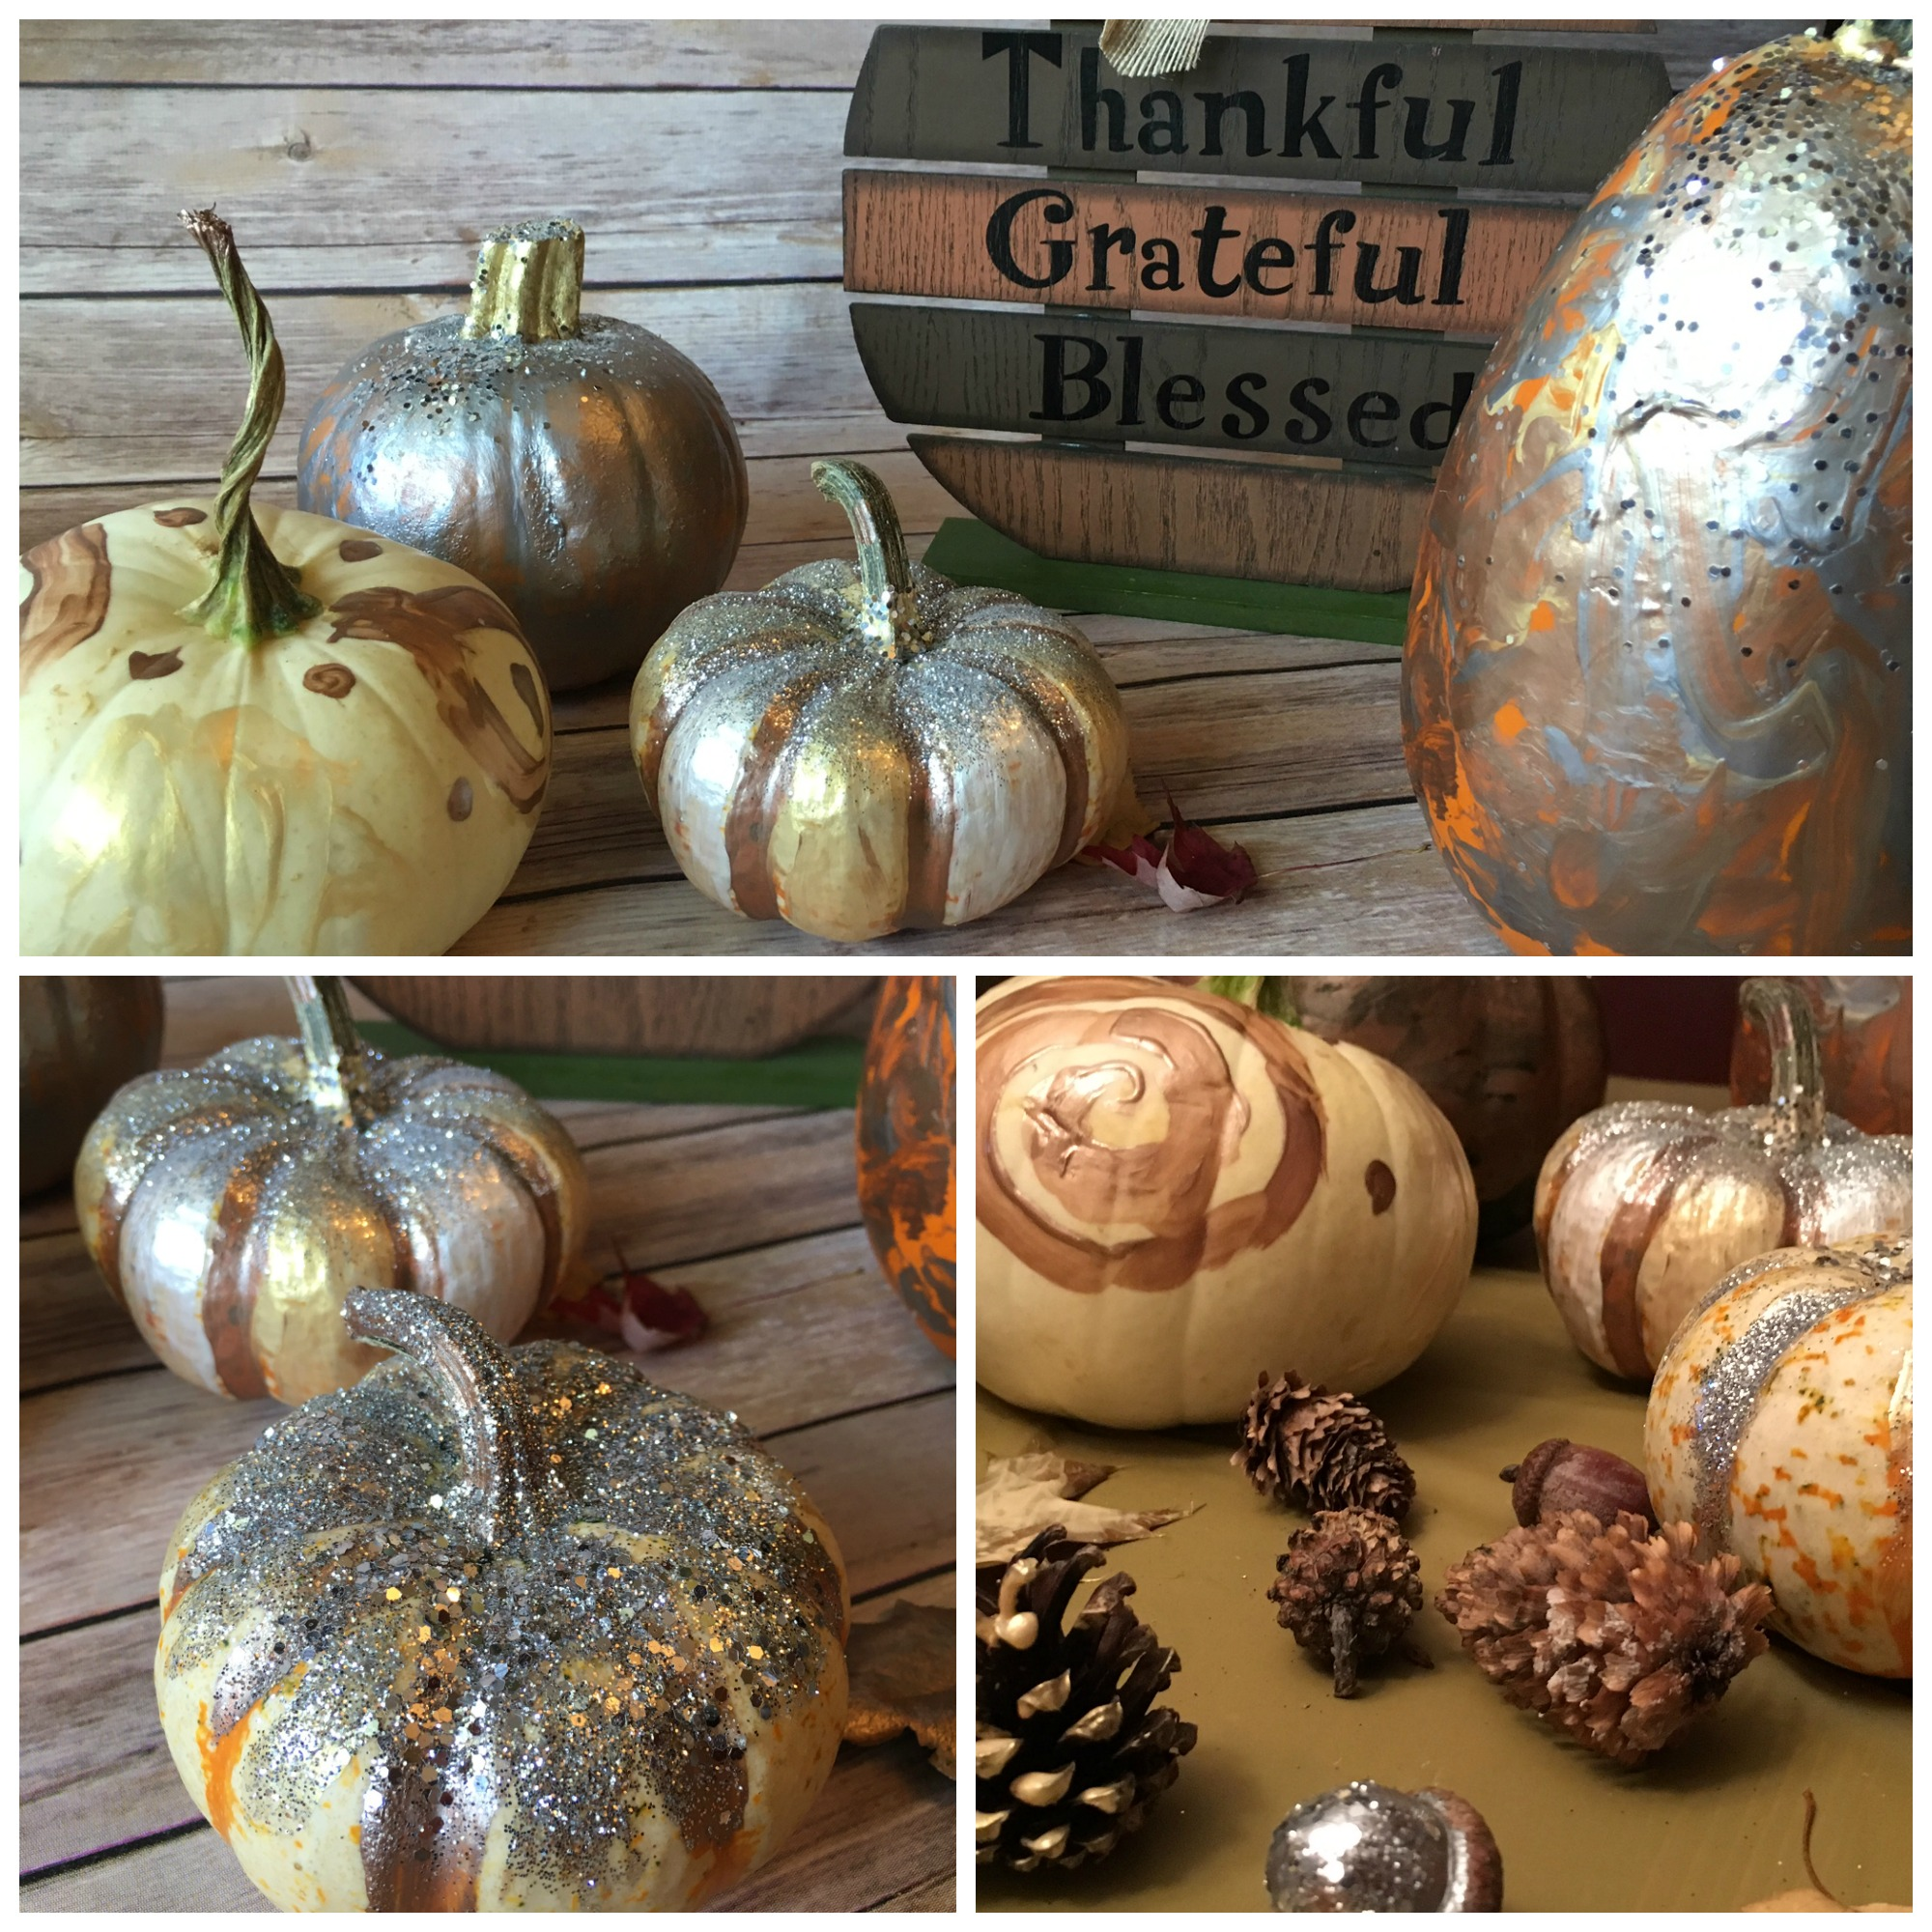 Make your own painted pumpkins for Halloween or Thanksgiving... such a fun craft for fall! #pumpkin #paintedpumpkin #glitterpumpkin #homedecor #falldecorations #thanksgiving #halloween #autumn